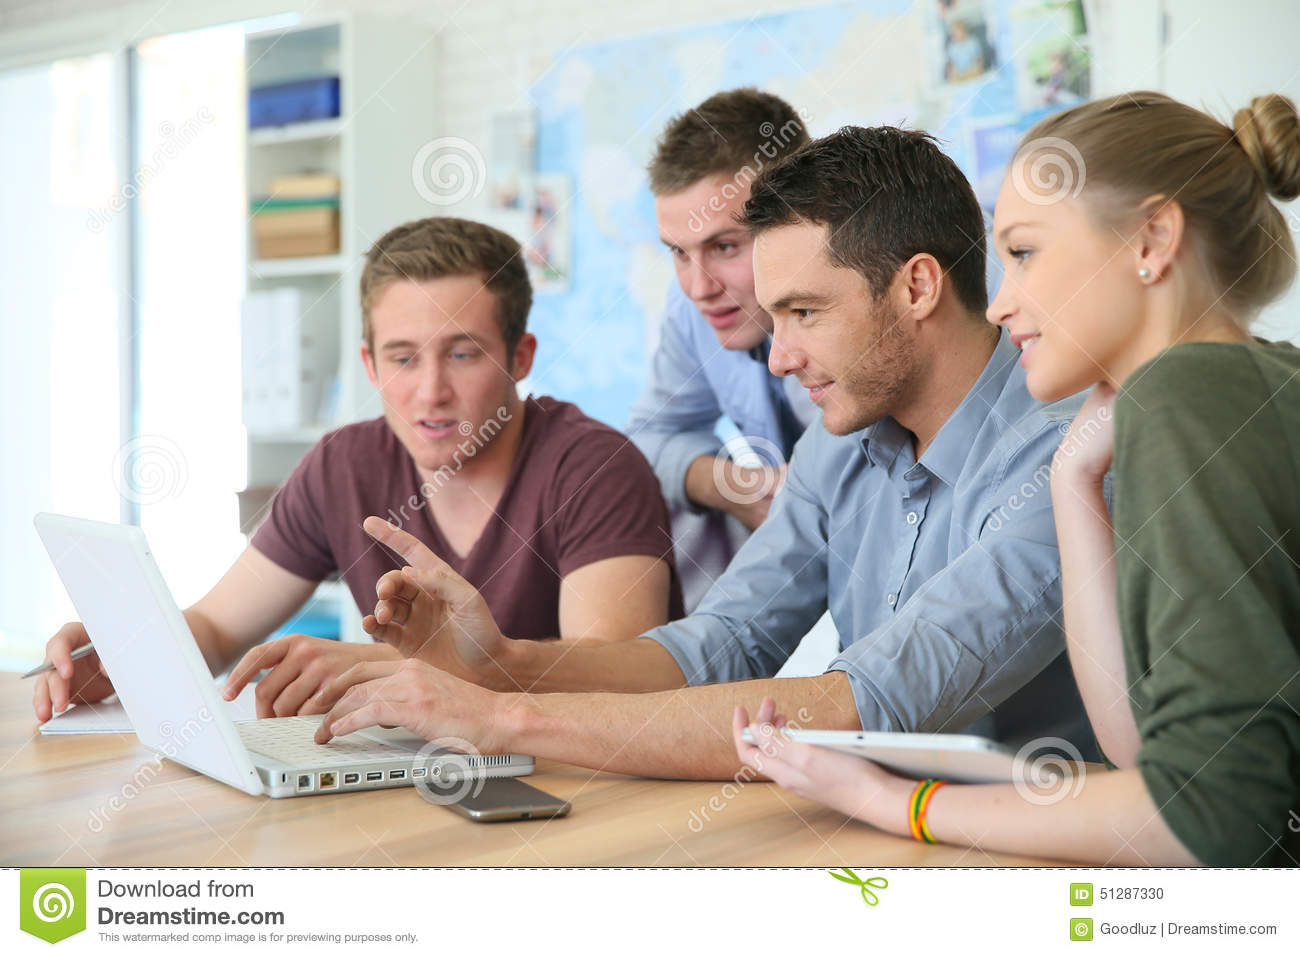 Group of students during business training